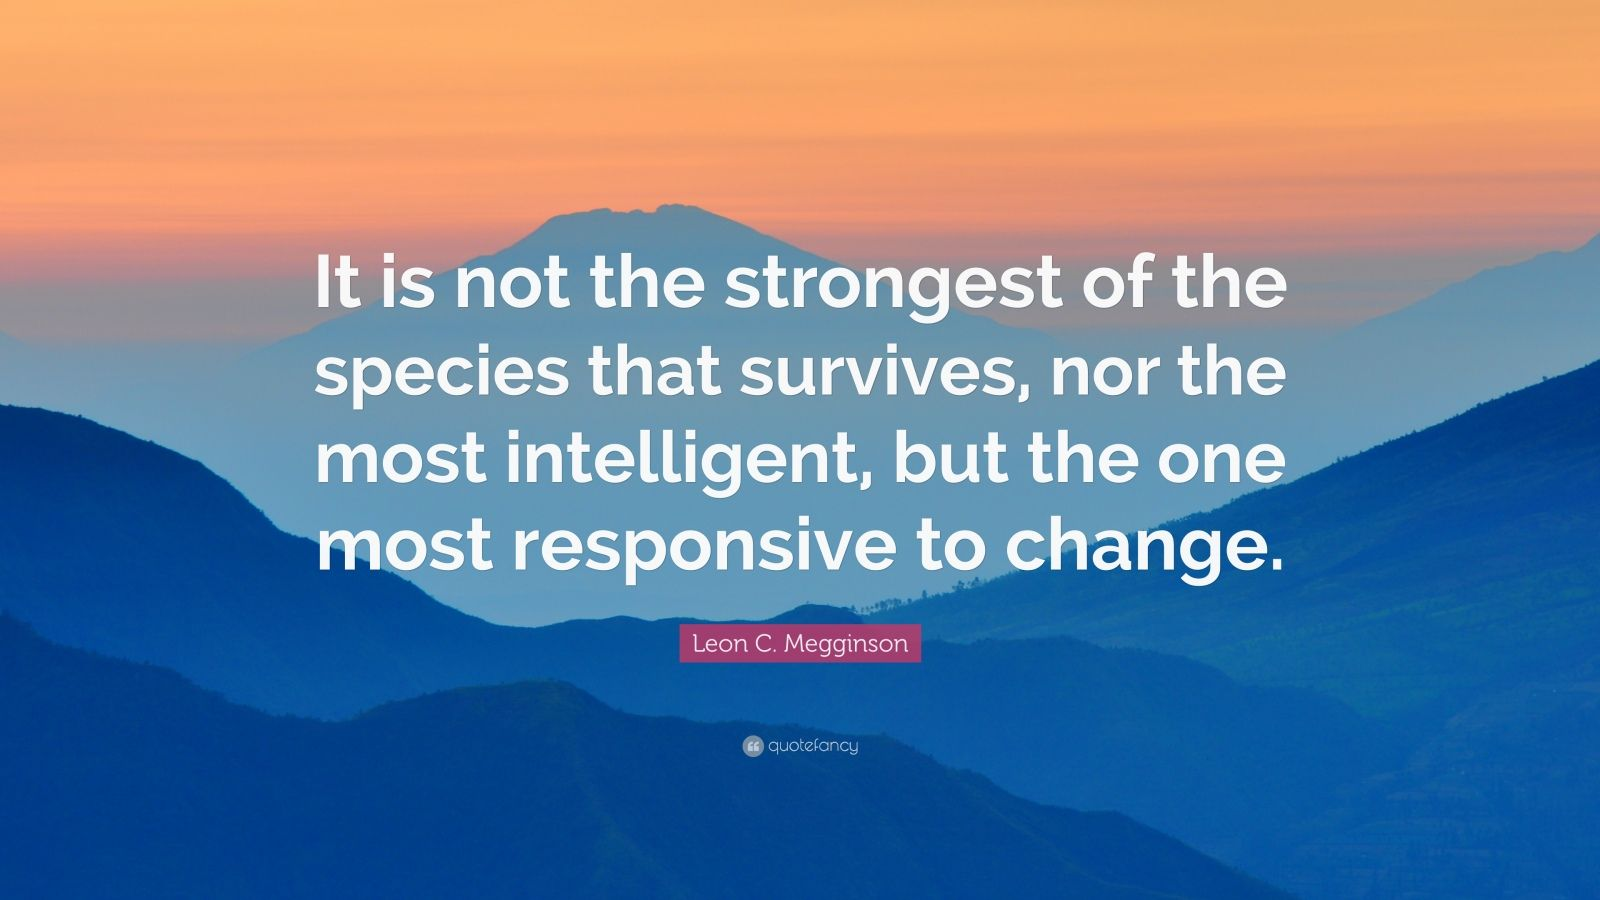 Courage Wallpapers Quotes Leon C Megginson Quote It Is Not The Strongest Of The